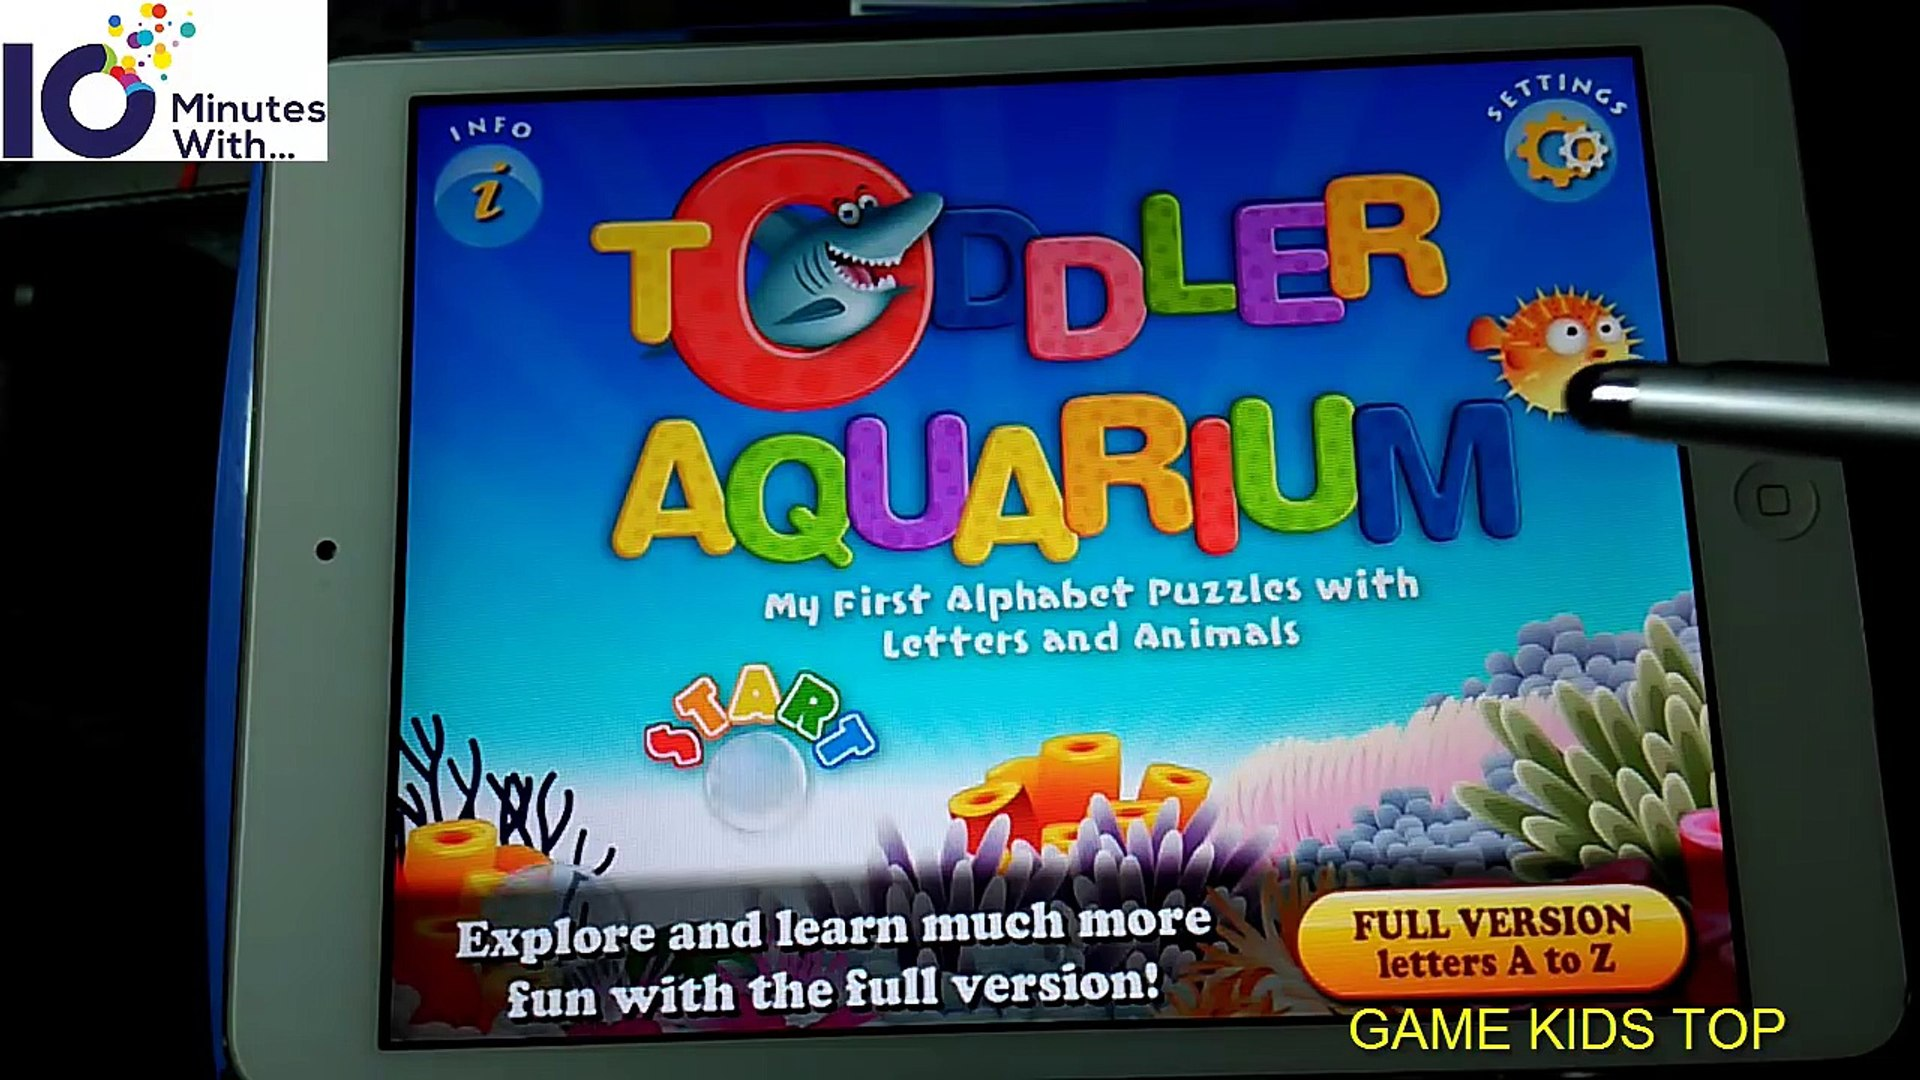 Kids First Alphabet Puzzles   Letters and Animals with Toddler Aquarium education app for Kids